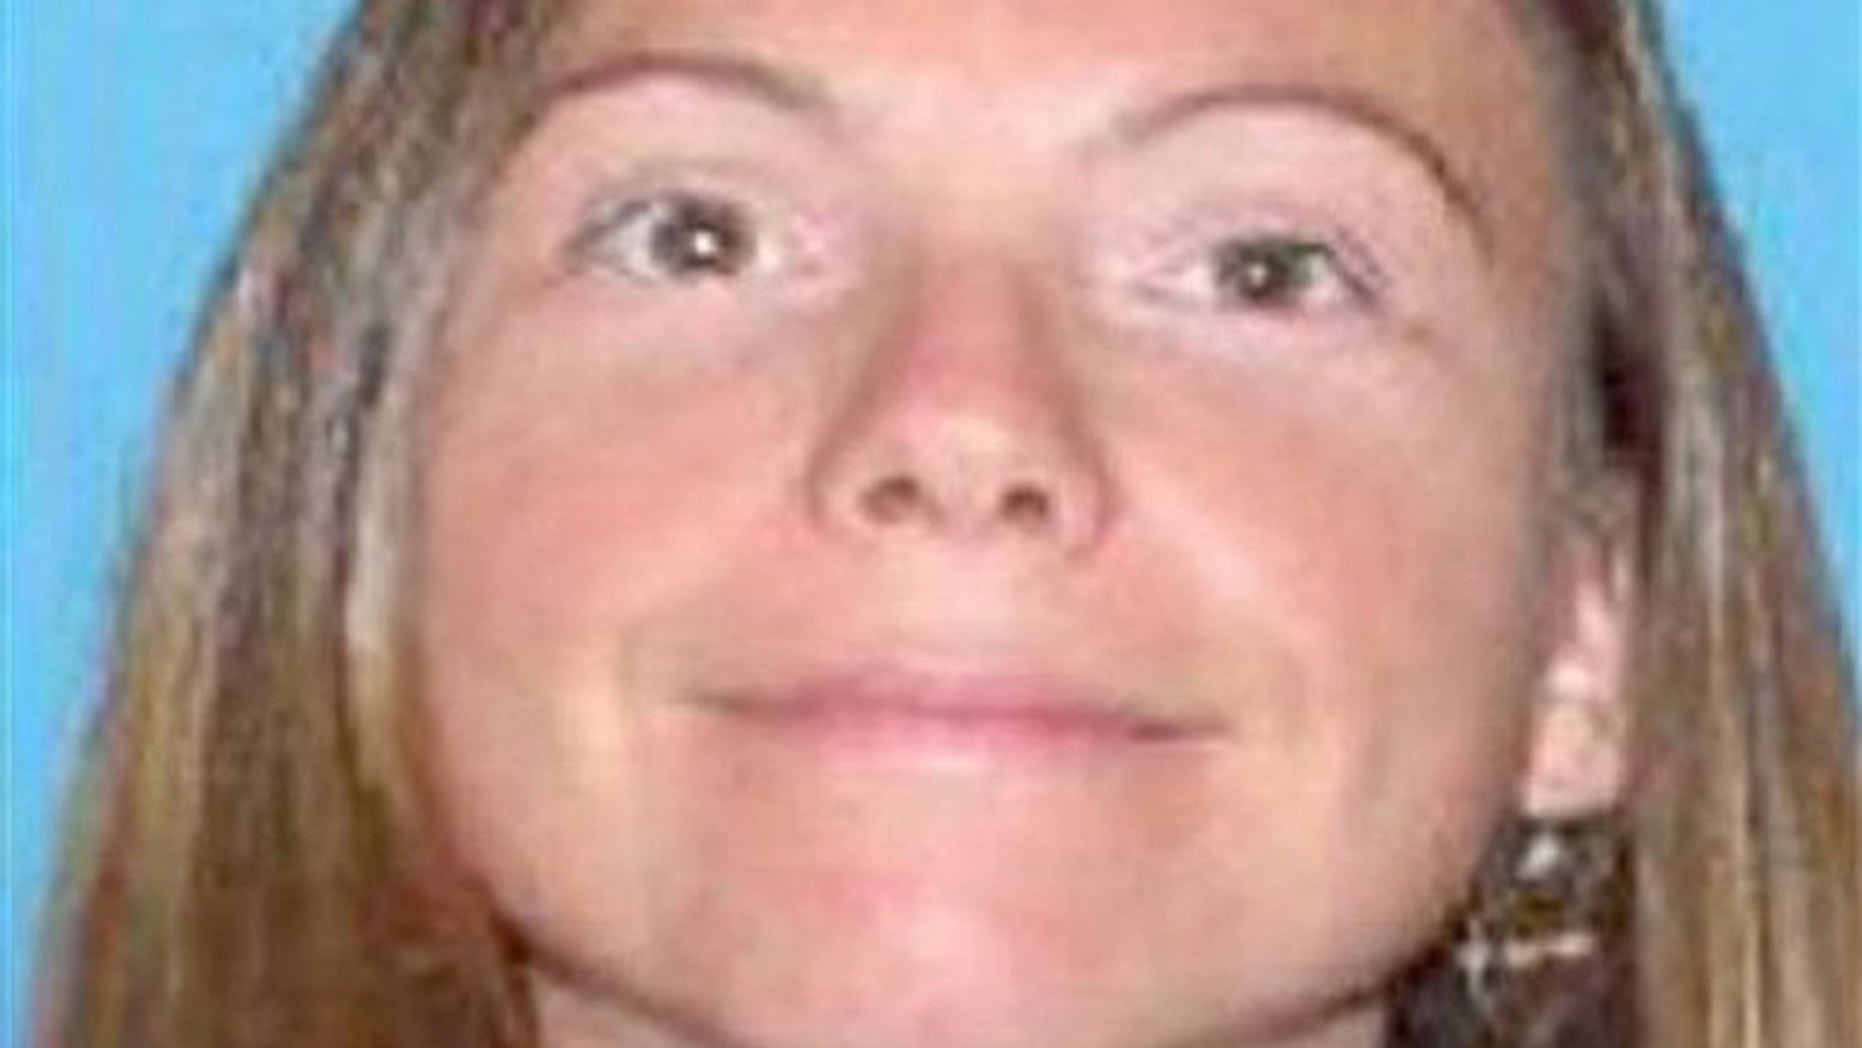 This undated handout photo released by the Pinellas County Sheriff's Office shows Kelly Rothwell (AP).